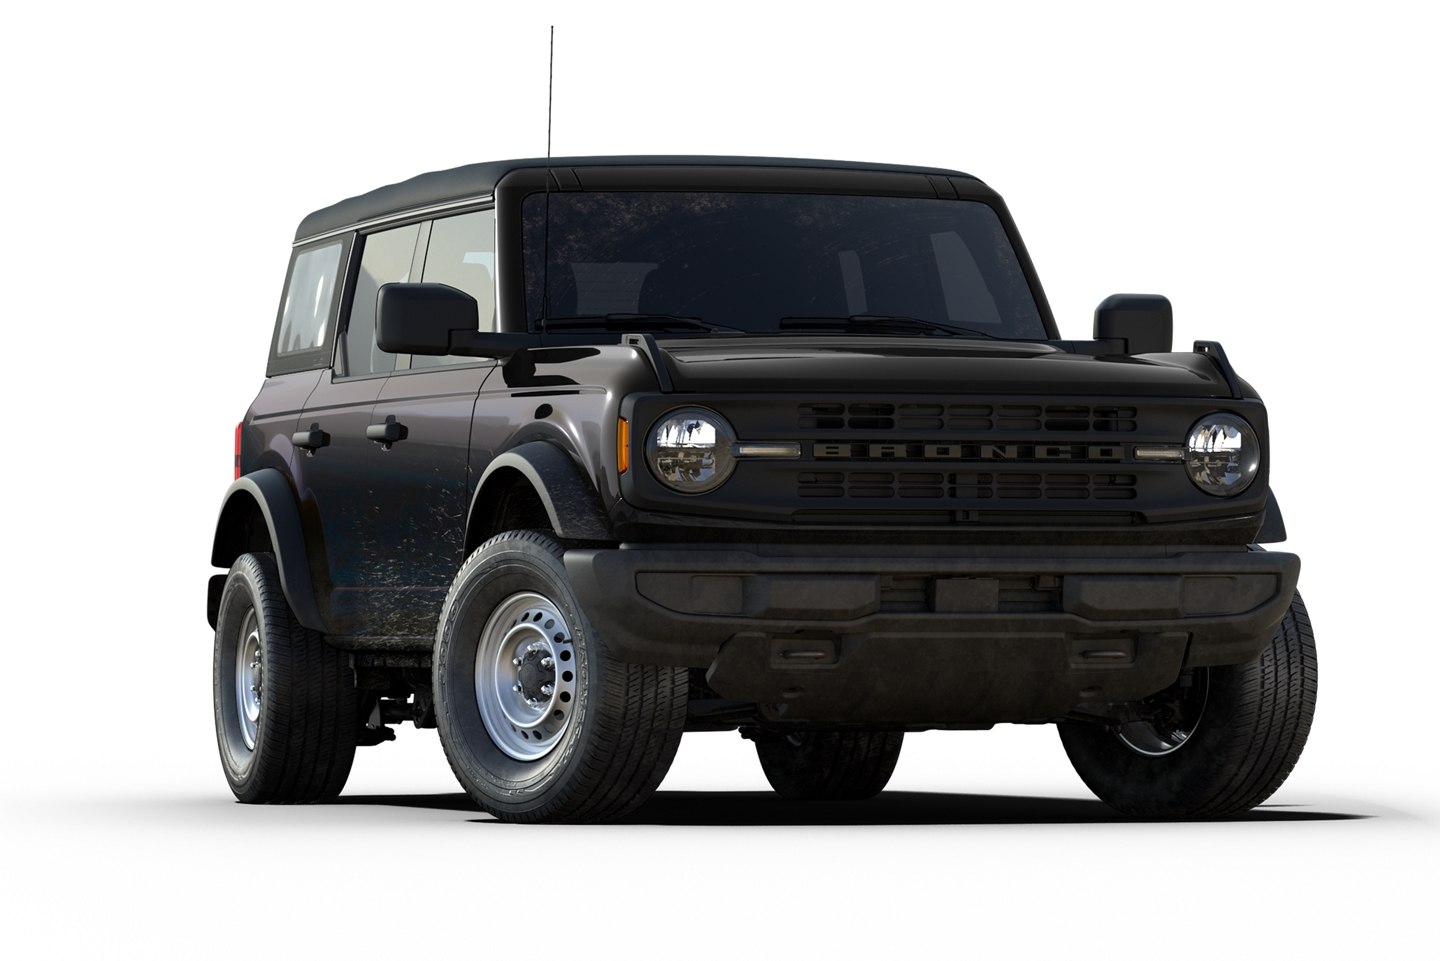 2021 Ford Bronco Base model